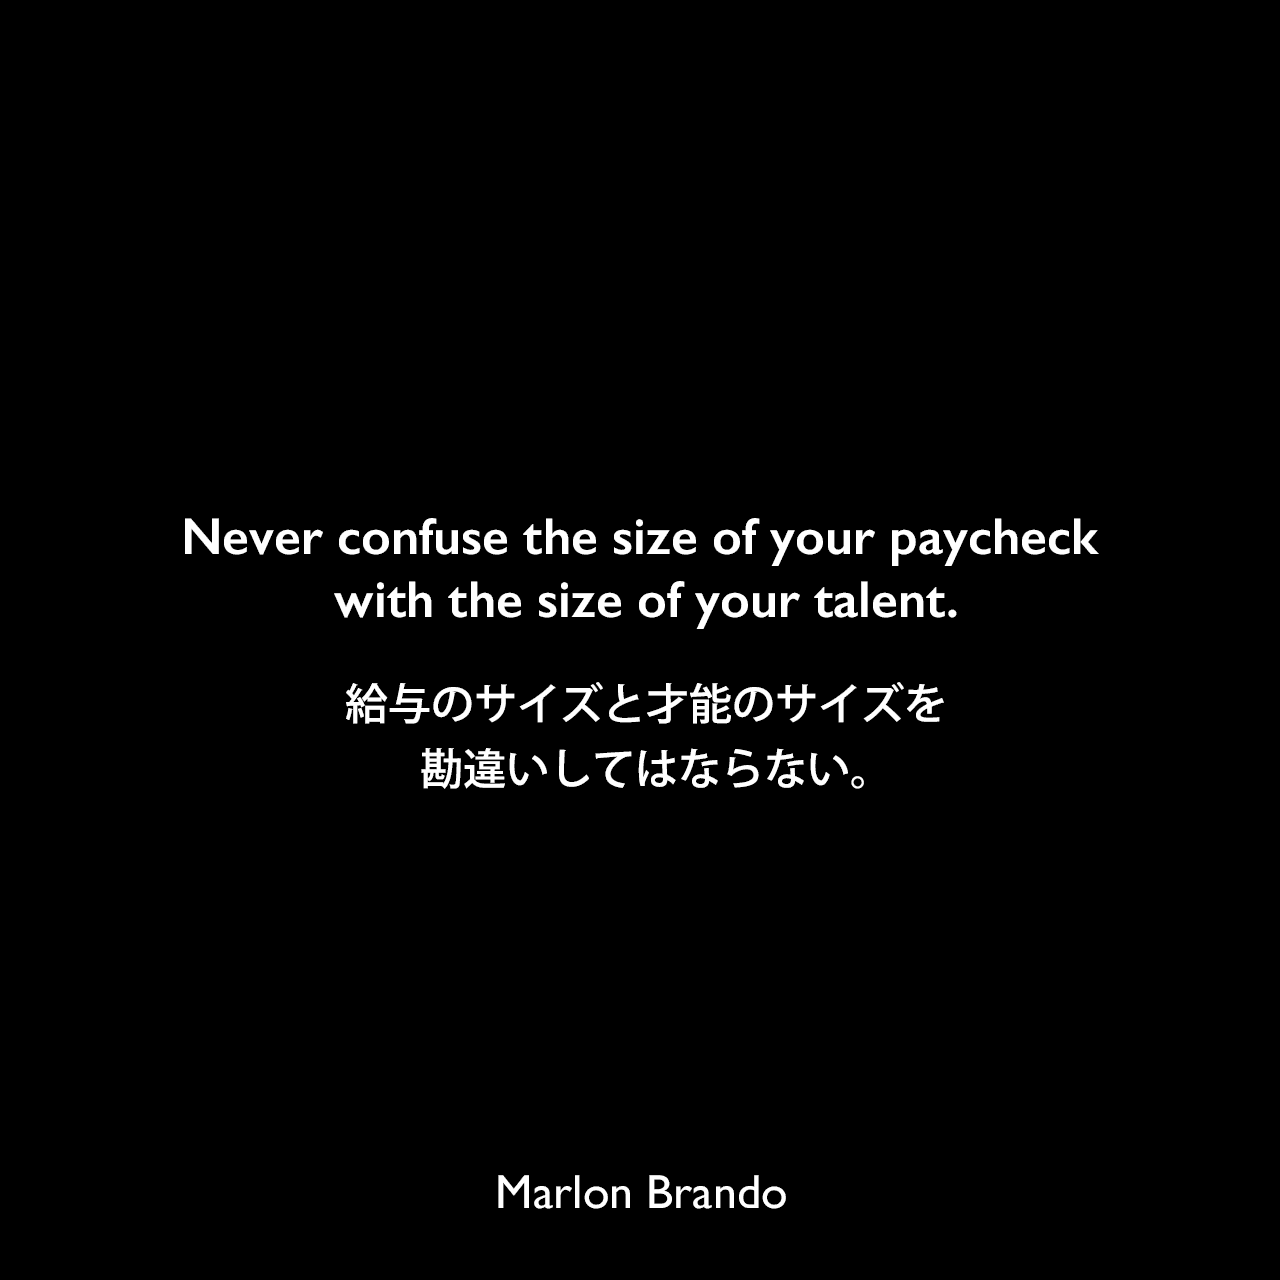 Never confuse the size of your paycheck with the size of your talent.給与のサイズと才能のサイズを勘違いしてはならない。Marlon Brando